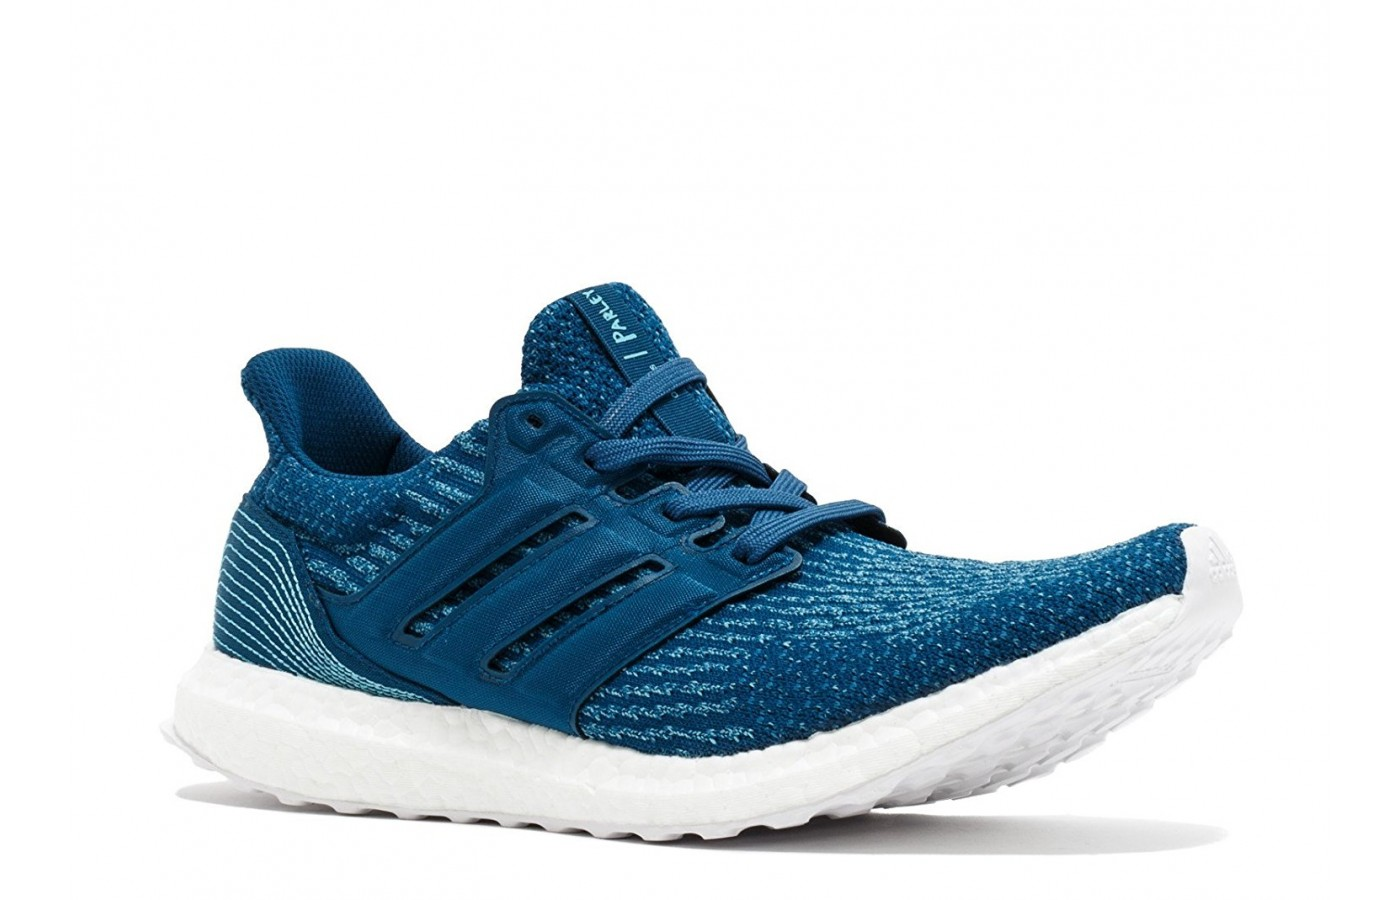 5ea409cdeeac8 Adidas Ultraboost X Parley Tested for Performance - WalkJogRun